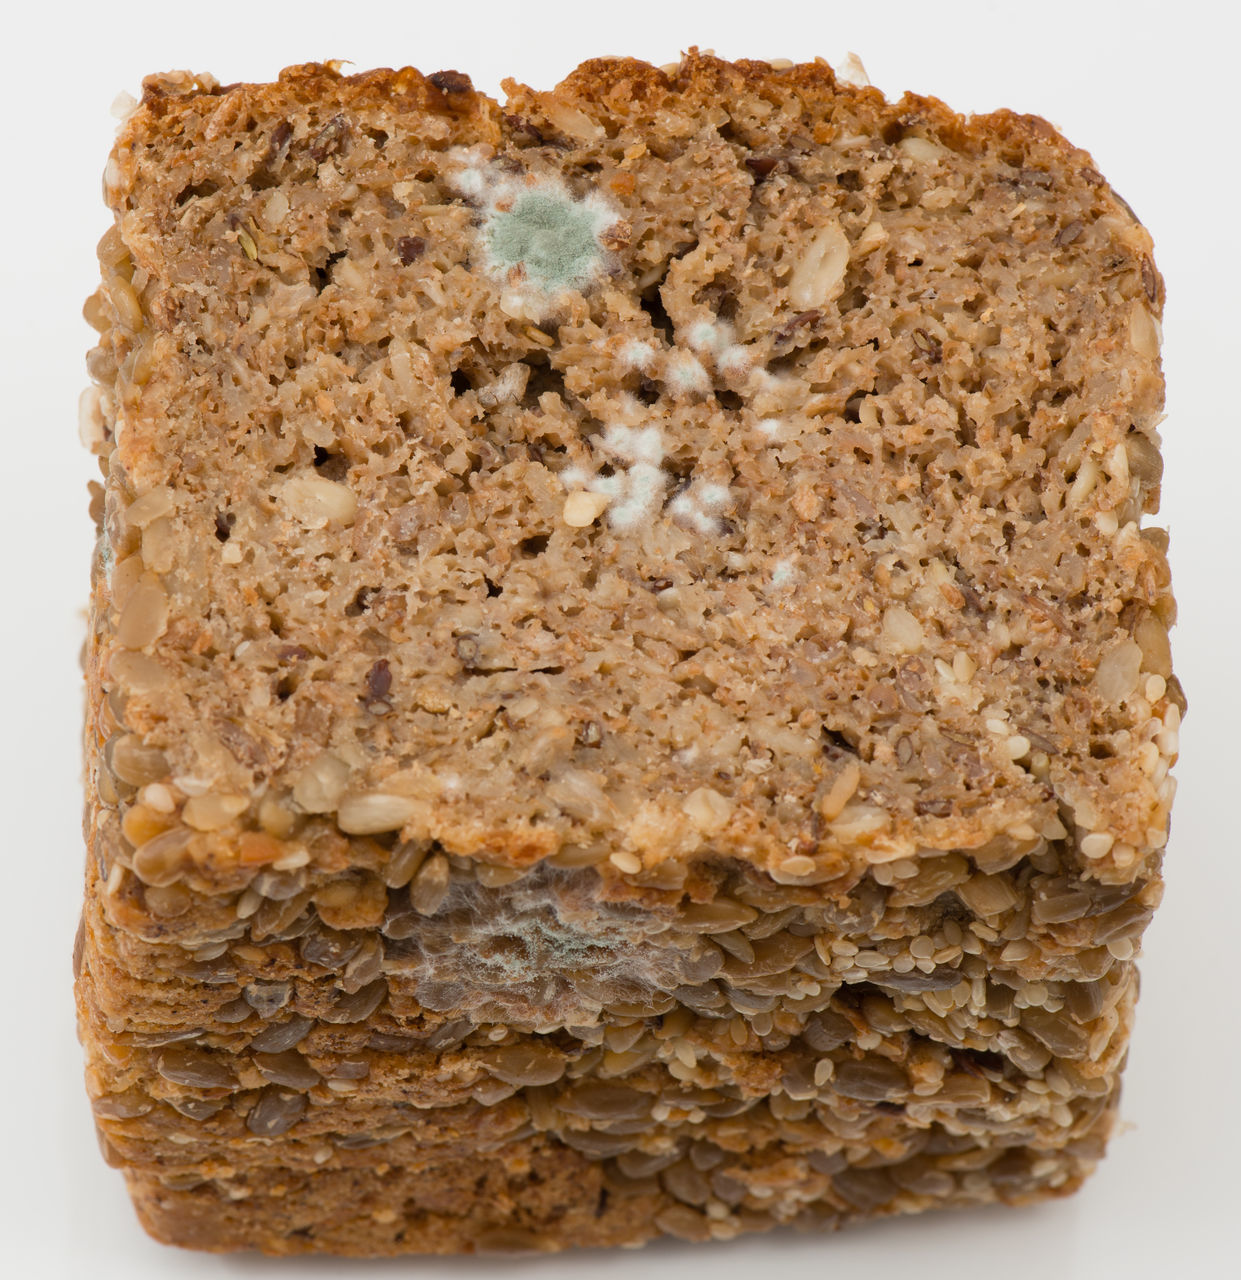 food and drink, bread, food, white background, studio shot, no people, close-up, freshness, indoors, protein bar, ready-to-eat